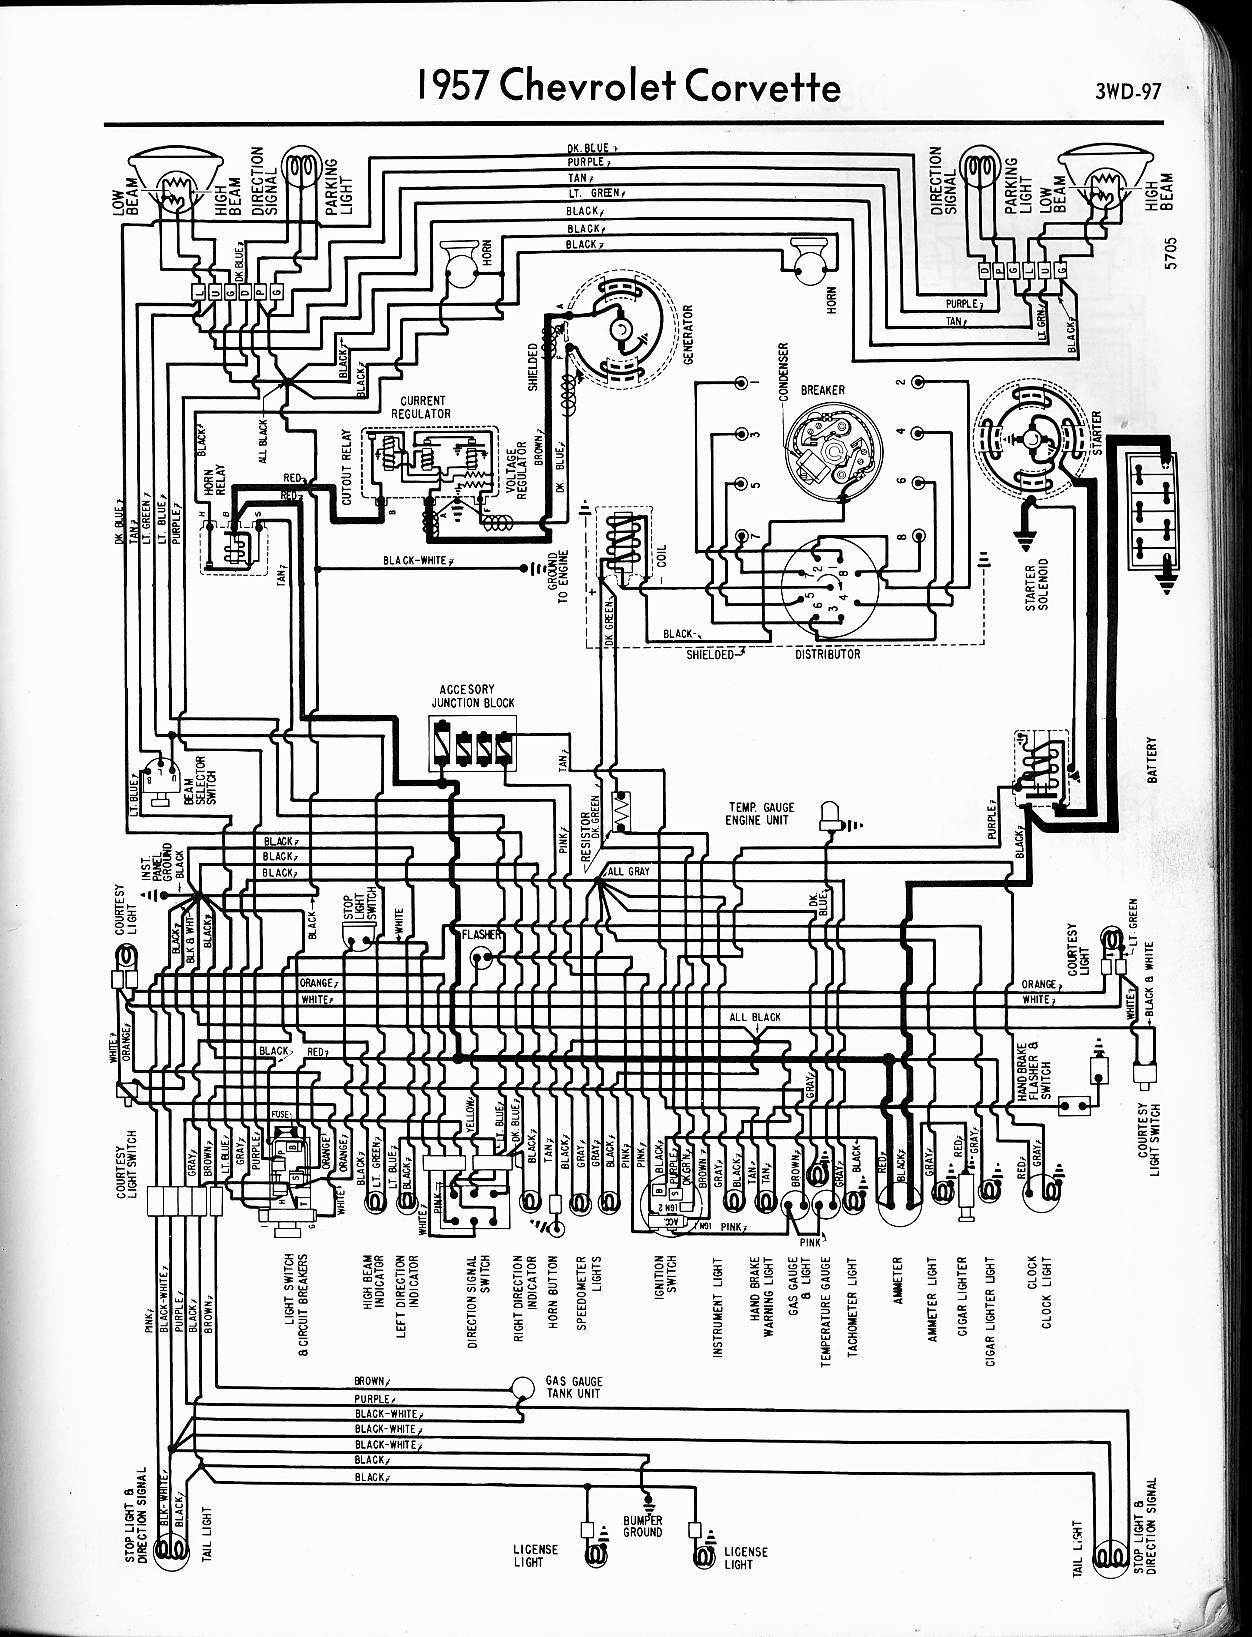 MWireChev57_3WD 097 57 65 chevy wiring diagrams 57 chevy truck wiring harness at soozxer.org